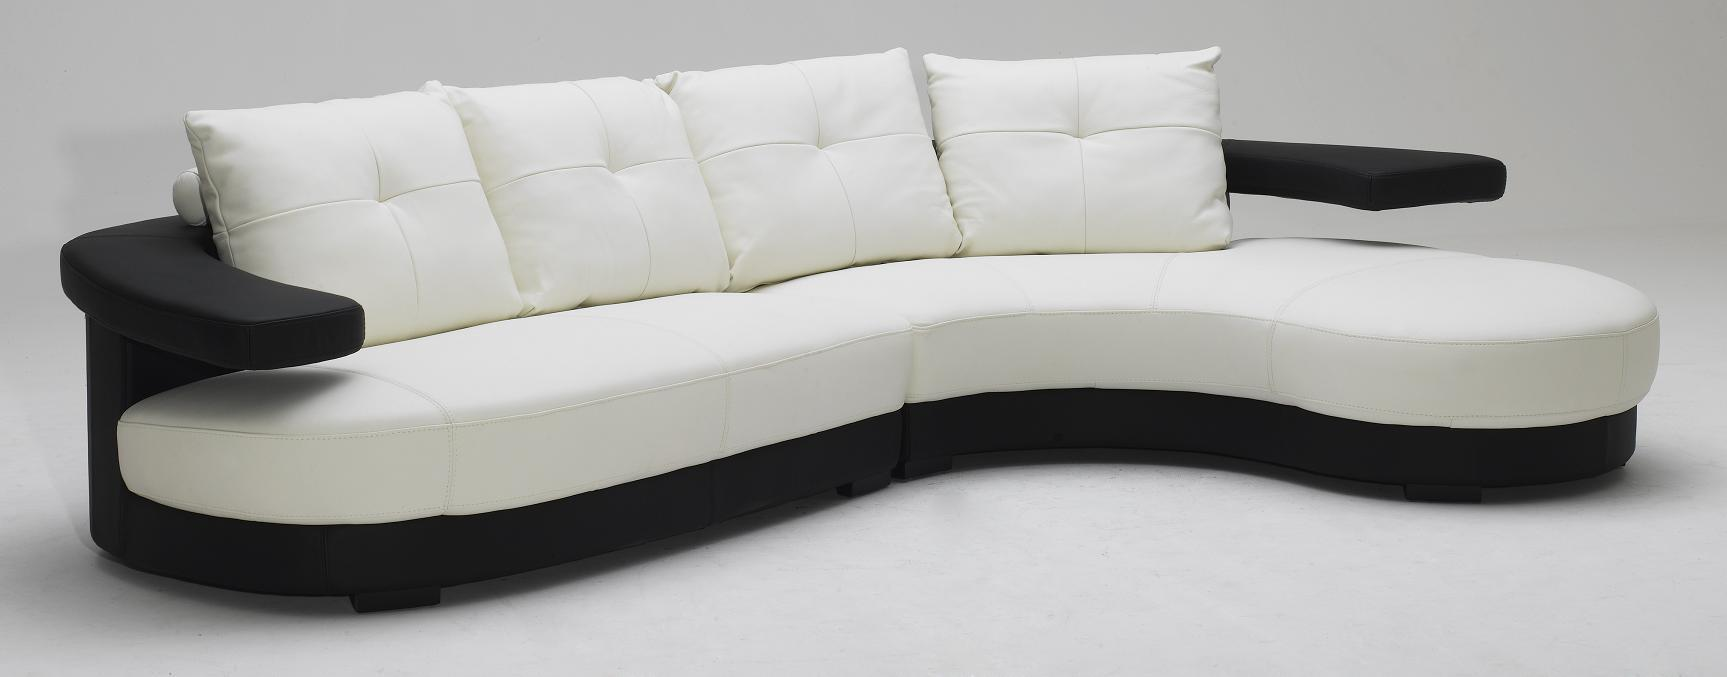 Whats The Difference Between Sofa And Couch - Modern-and-unique-sofa-designs